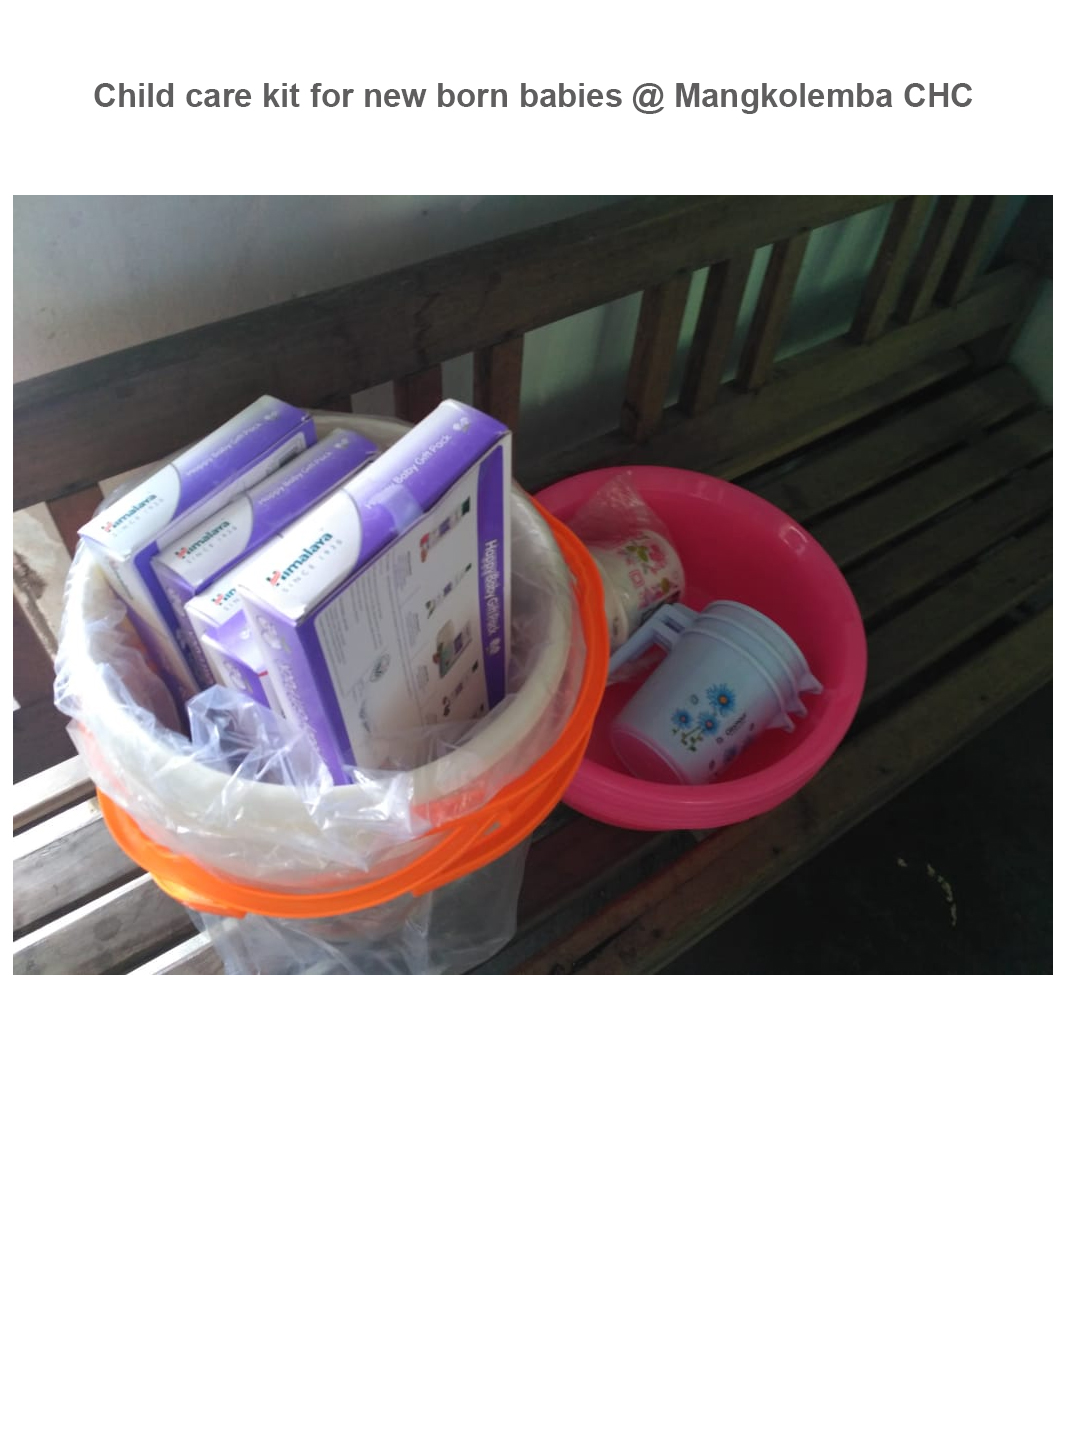 Child-care-kit-for-new-born-babies